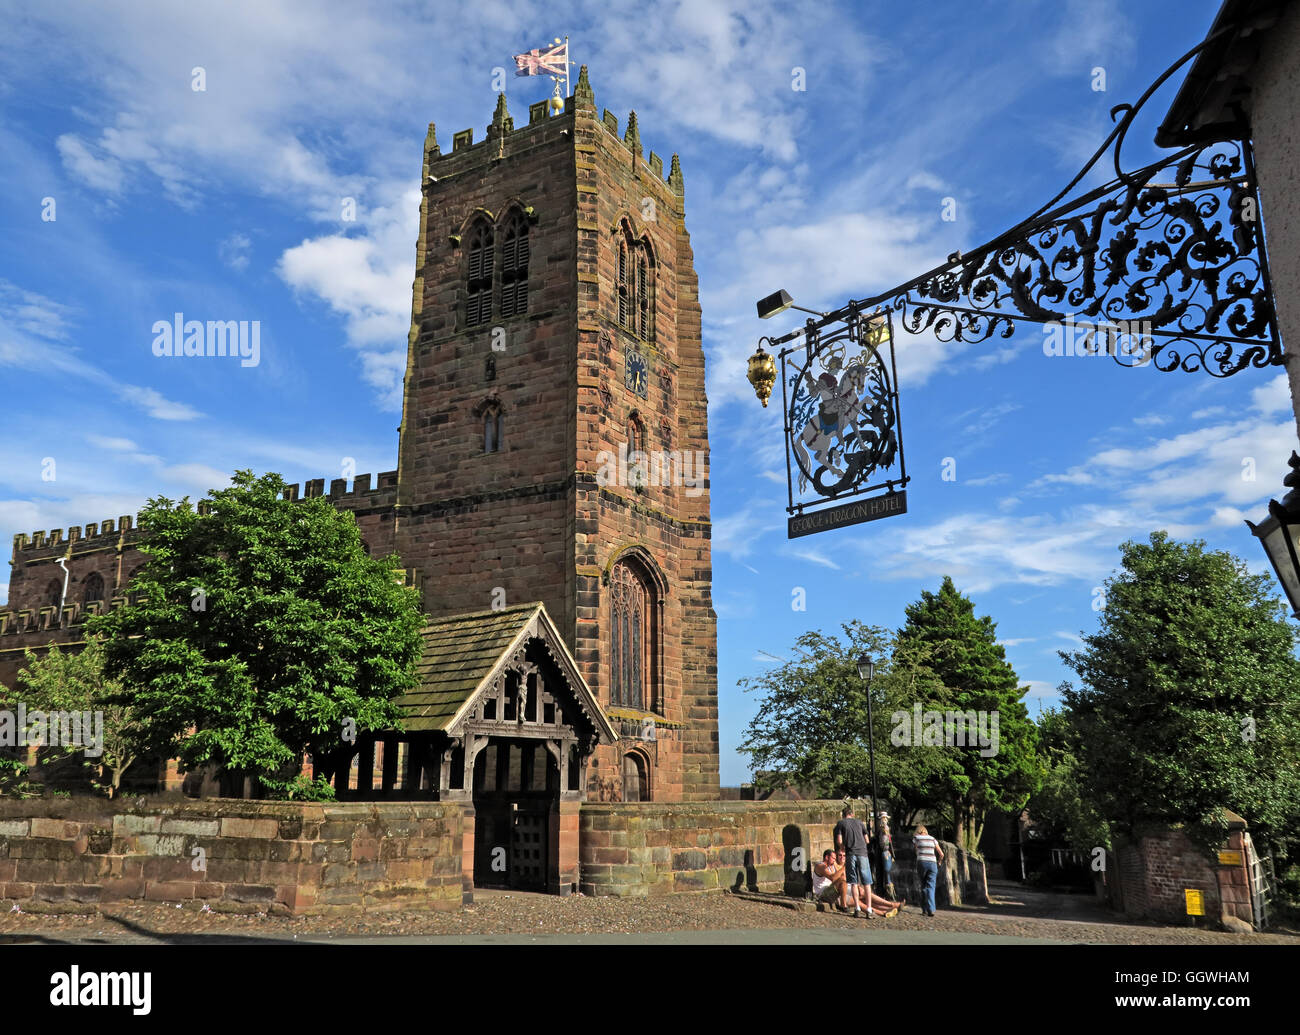 George and Dragon wrought iron sign and St Marys Church,Great Budworth,Cheshire,England, UK - Stock Image